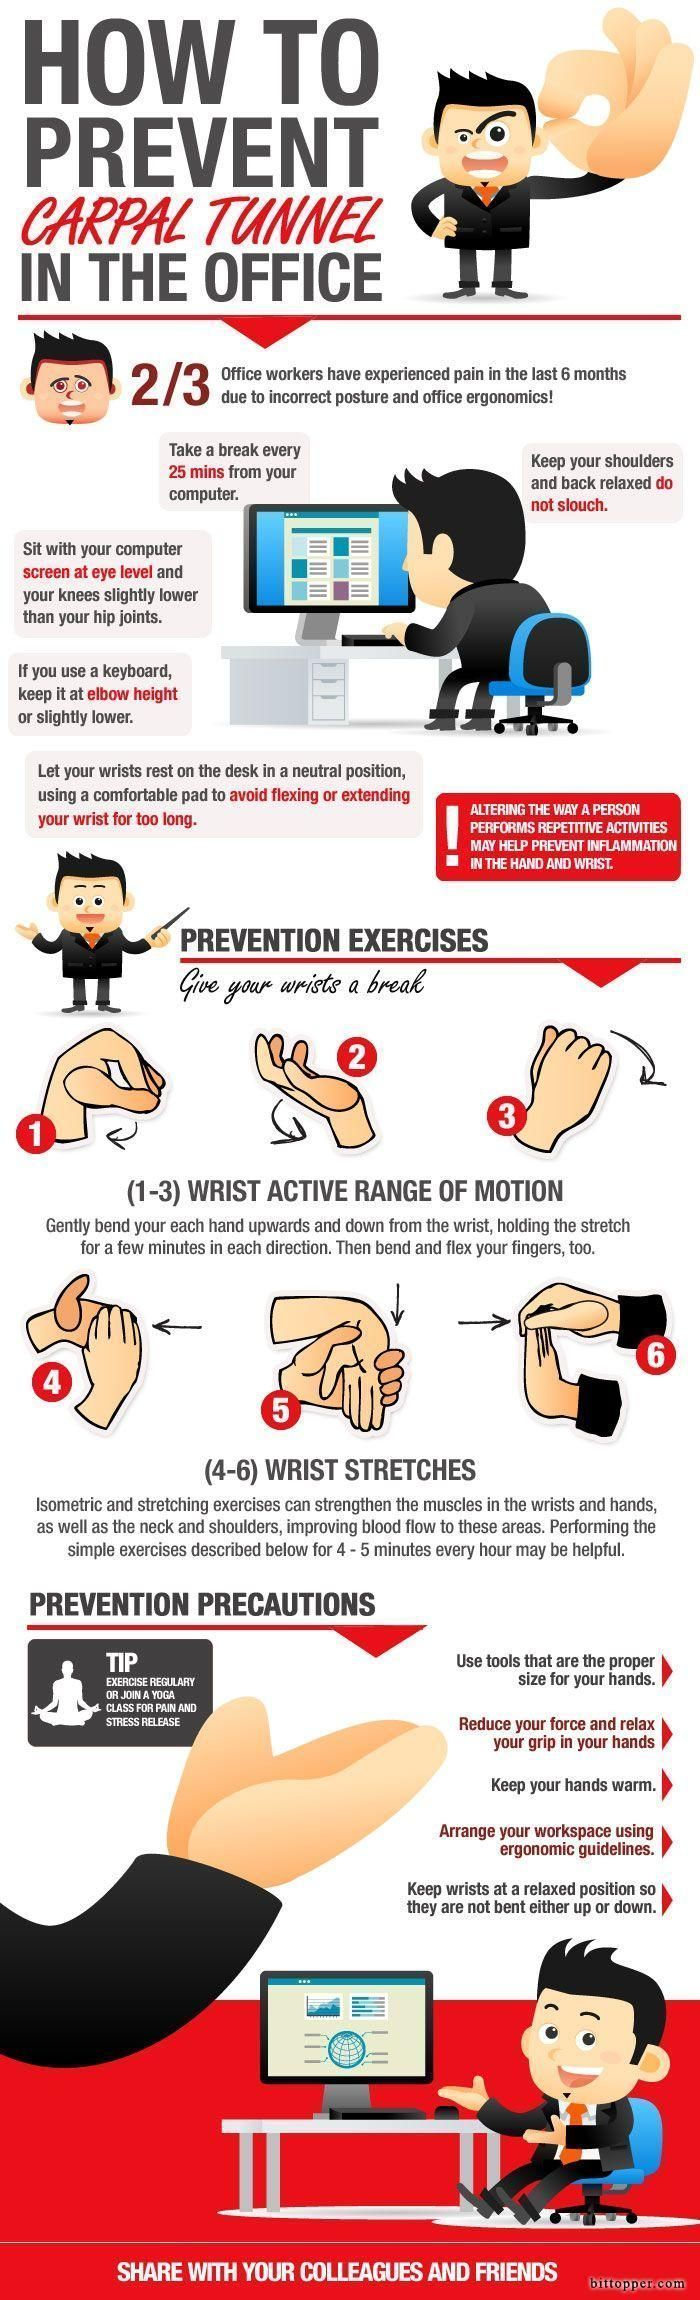 How to prevent Carpal Tunnel Syndrome in the office, using a few simple preventative measures. #Health #Infographic via bittopper.com